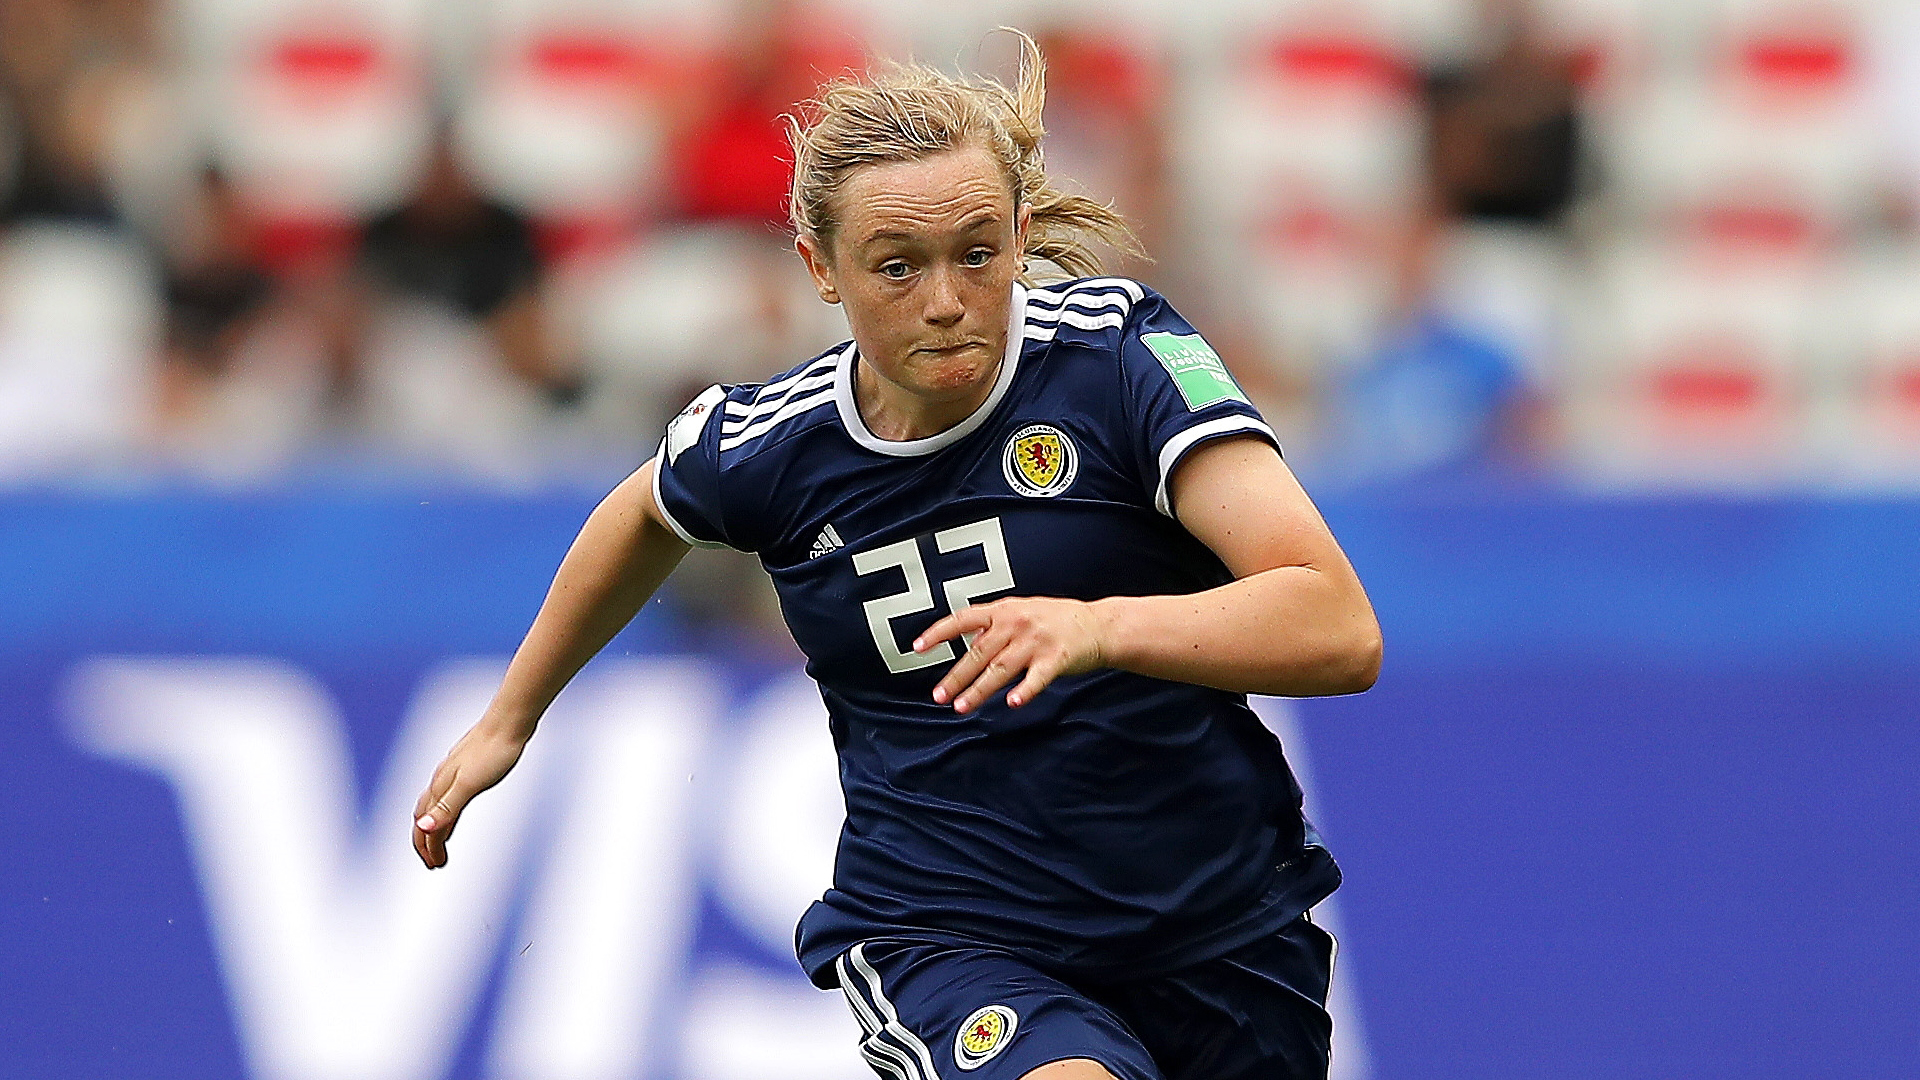 Scotland Women vs Argentina Women Betting Preview: Latest odds, team news, preview and predictions